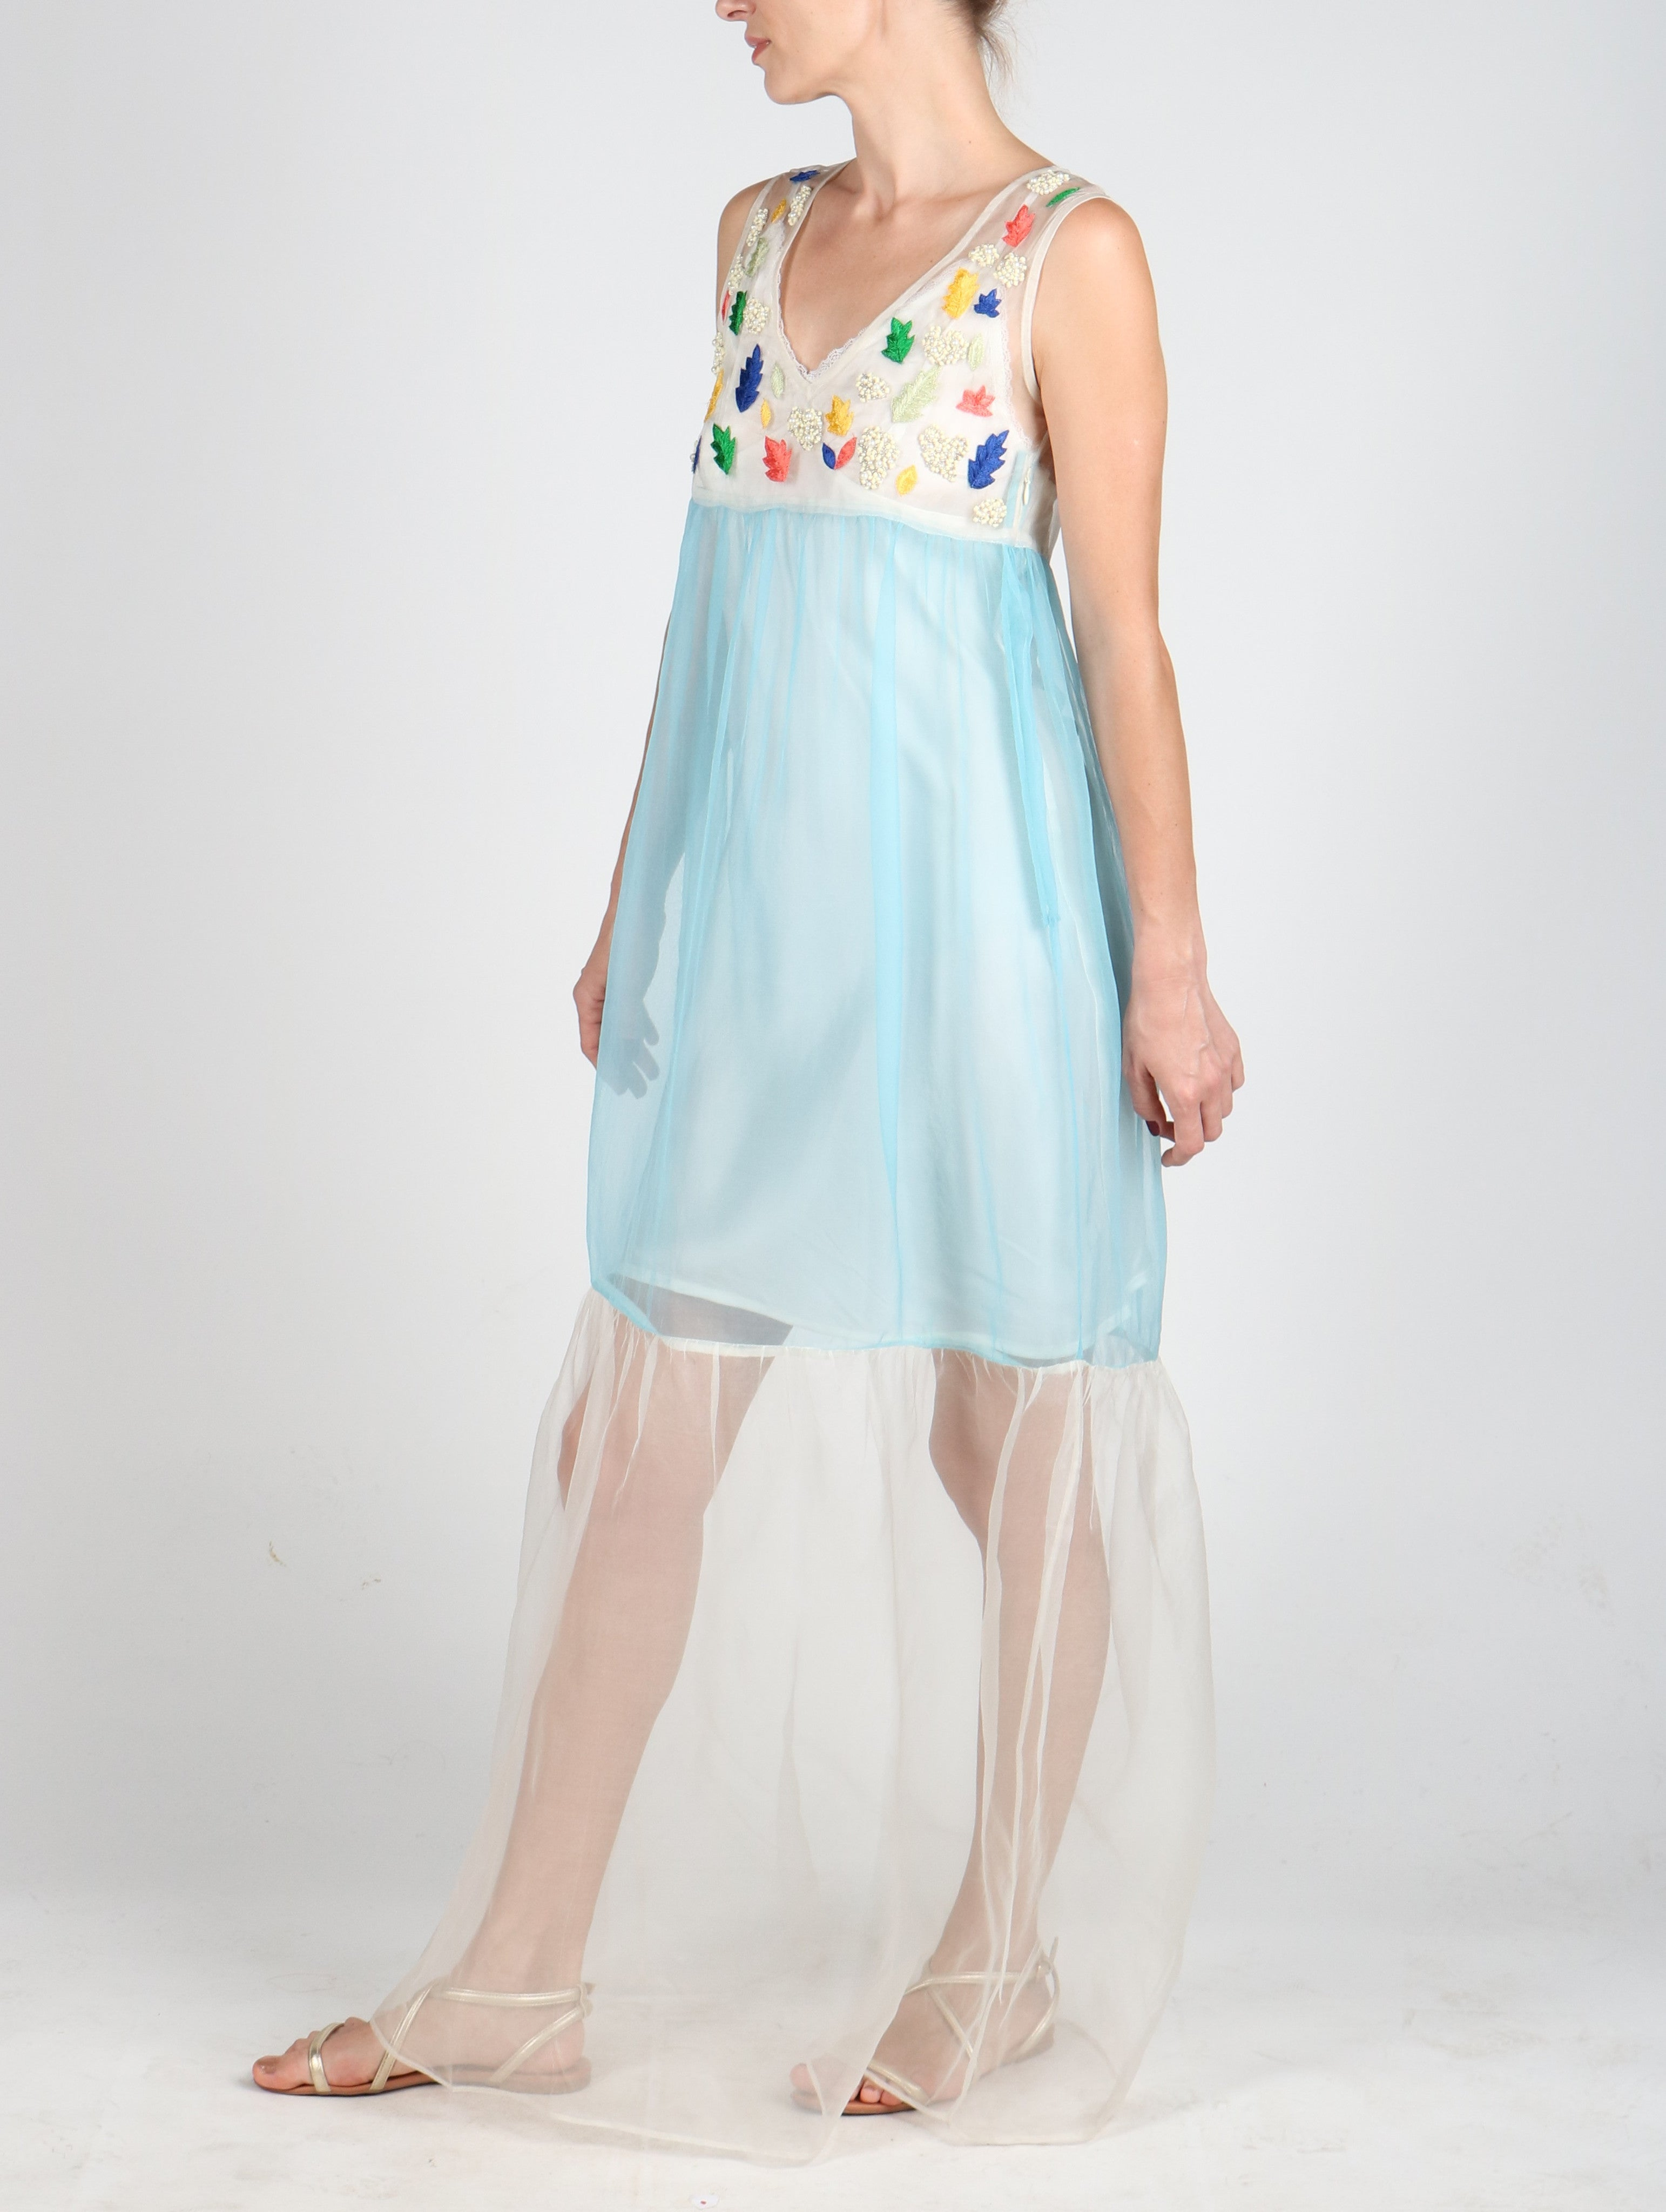 Fanm Mon LAILA Blue Hand Embroidered Hand Beaded Silk Vyshyvanka Dress Transparent MAXI Dress